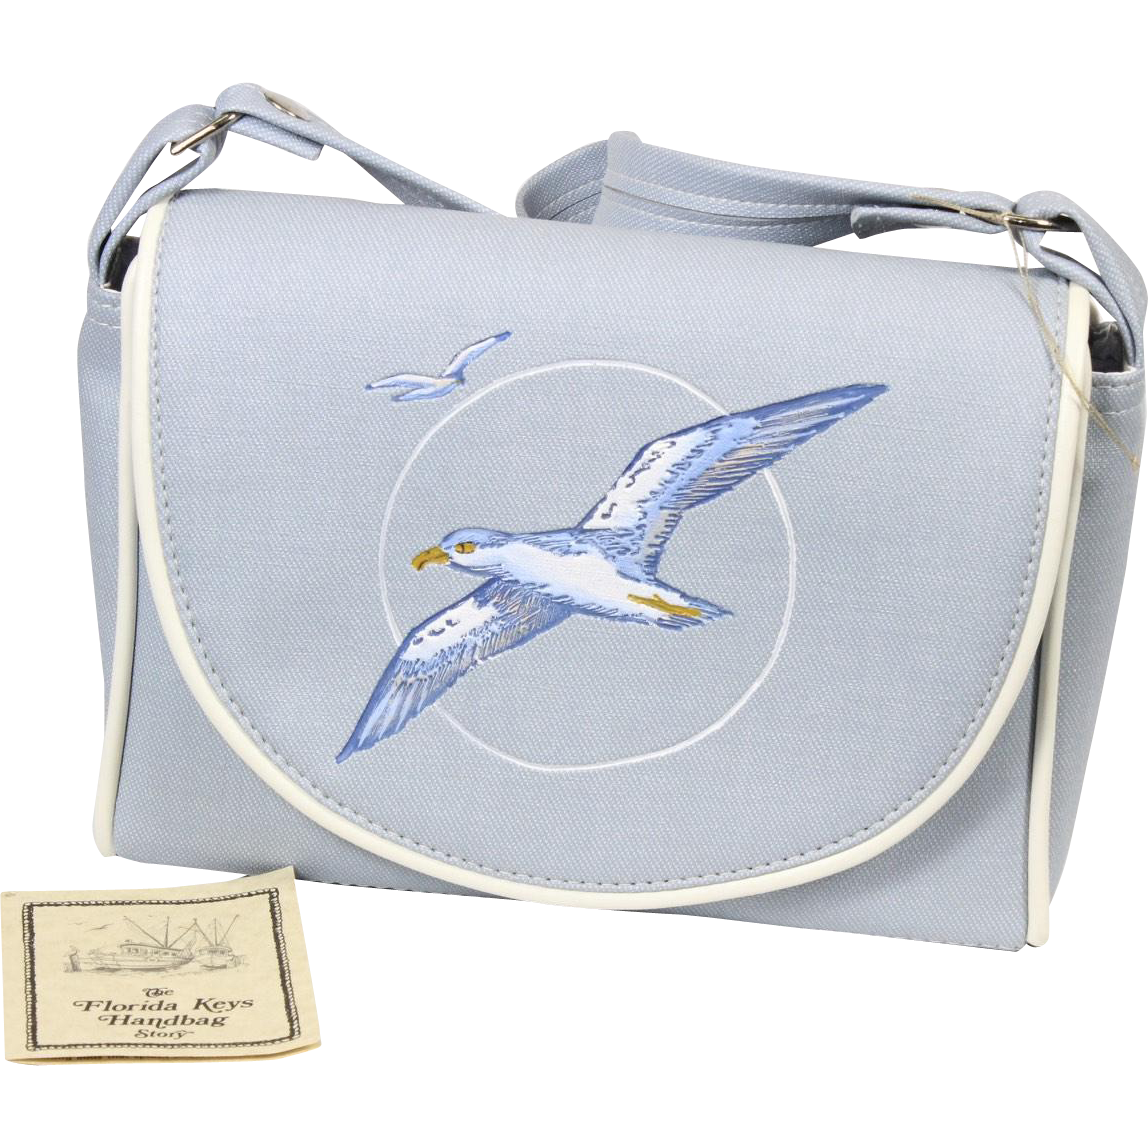 Vintage Seagull Florida Keys Handbag Purse Velcro Flap Closure Light Blue White